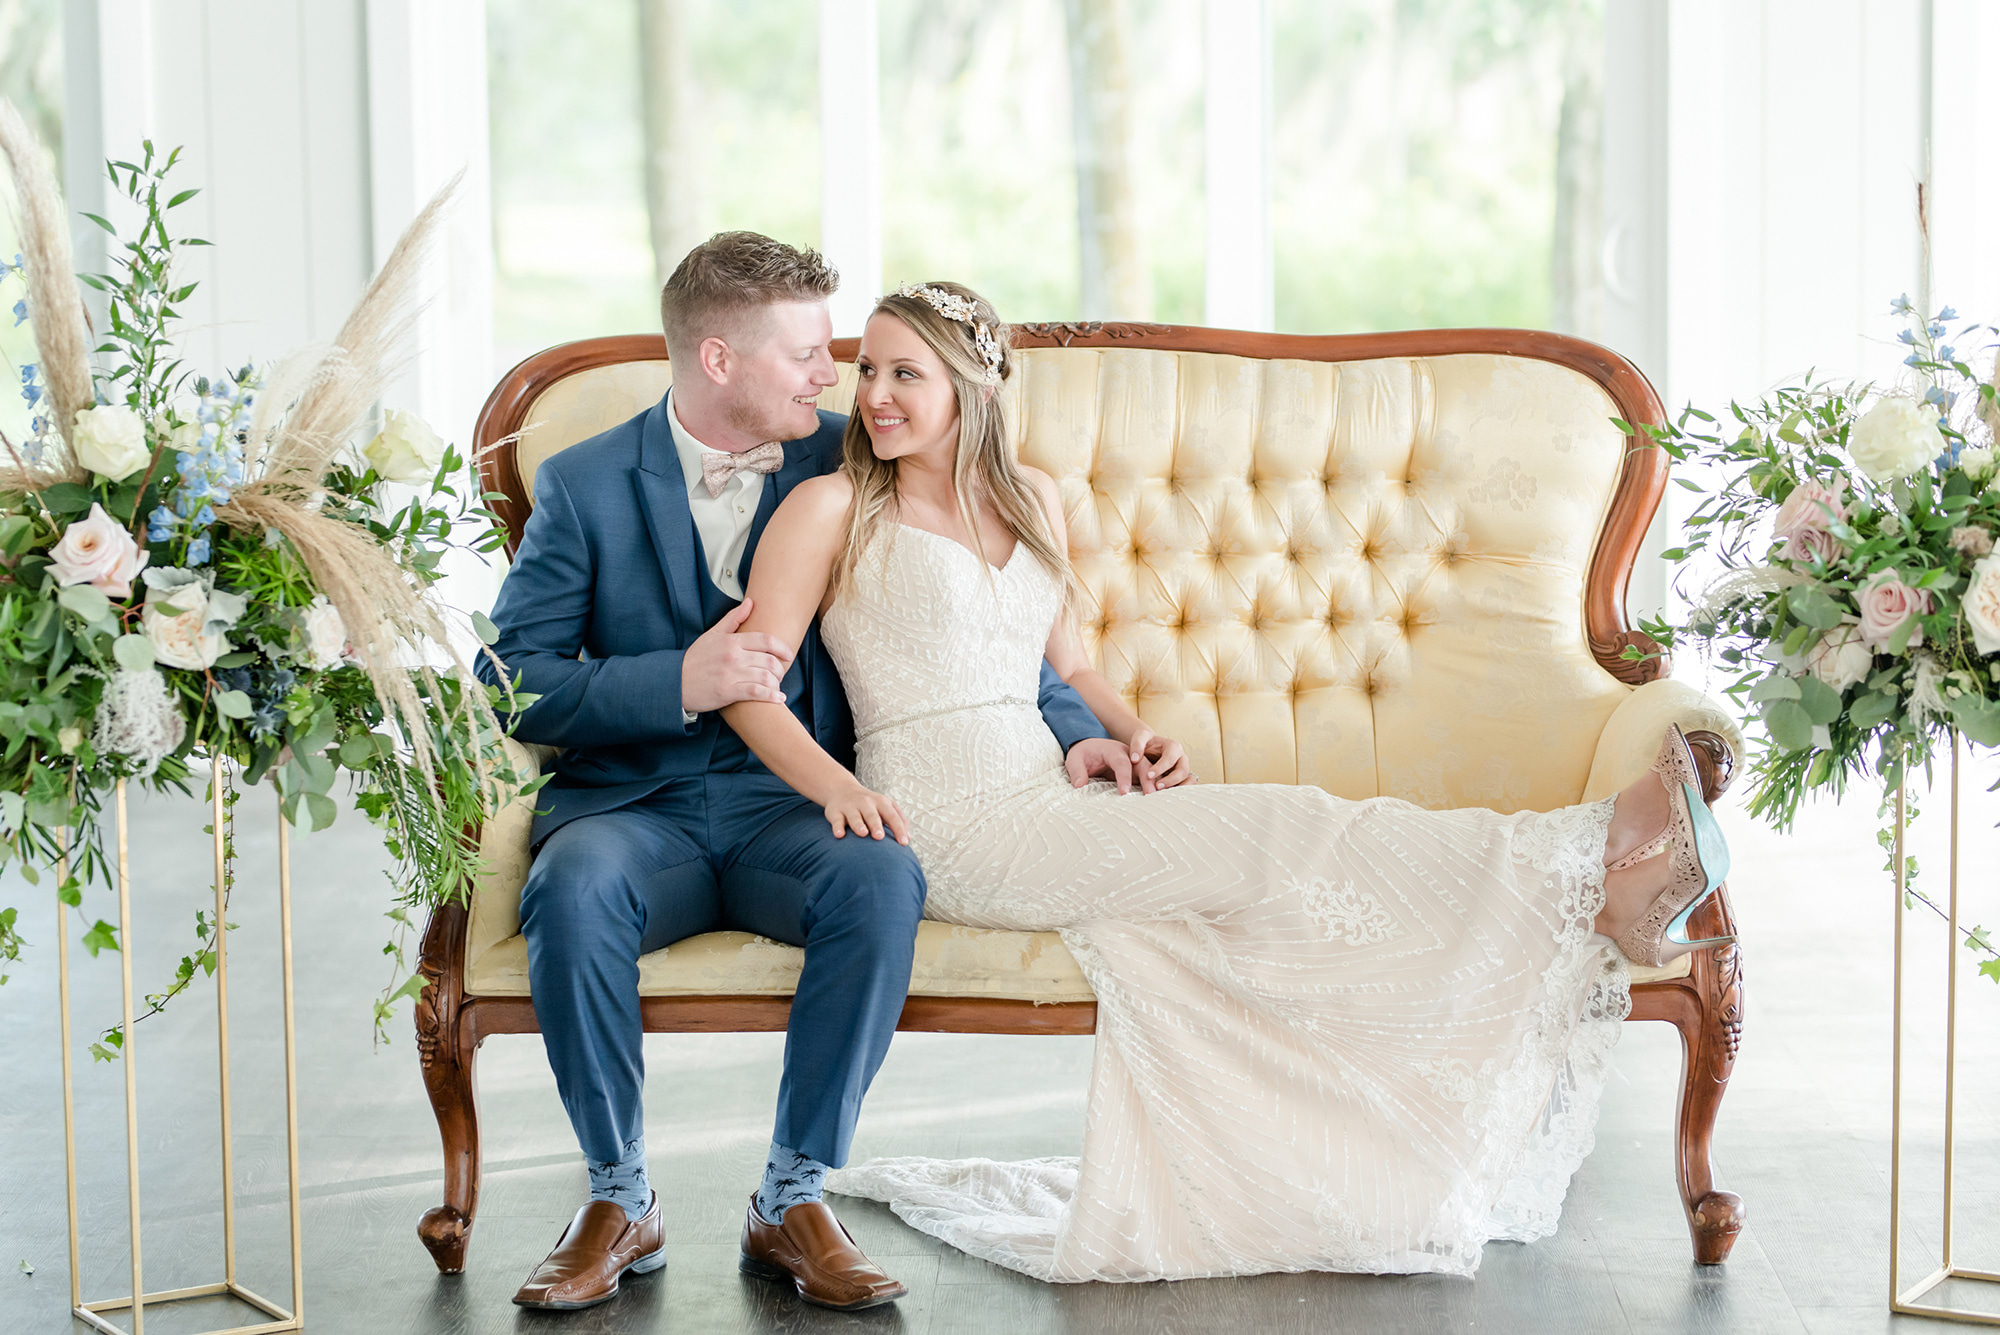 Dusty Rose Styled Wedding Shoot, Romantic Bride Wearing Strapless Beaded Sheath Wedding Dress, Rhinestone Leaf Headband, Pointed Toe Clear and Rhinestone Wedding Shoes, Lounging on Antique Ivory and Wood Loveseat with Groom in Blue Tuxedo Tall Gold Geometric Frame Stands with Blush Pink and Ivory Roses, Greenery, Eucalyptus, Blue Flowers and Feather Floral Arrangements   Tampa Bay Wedding Planner Elegant Affairs by Design